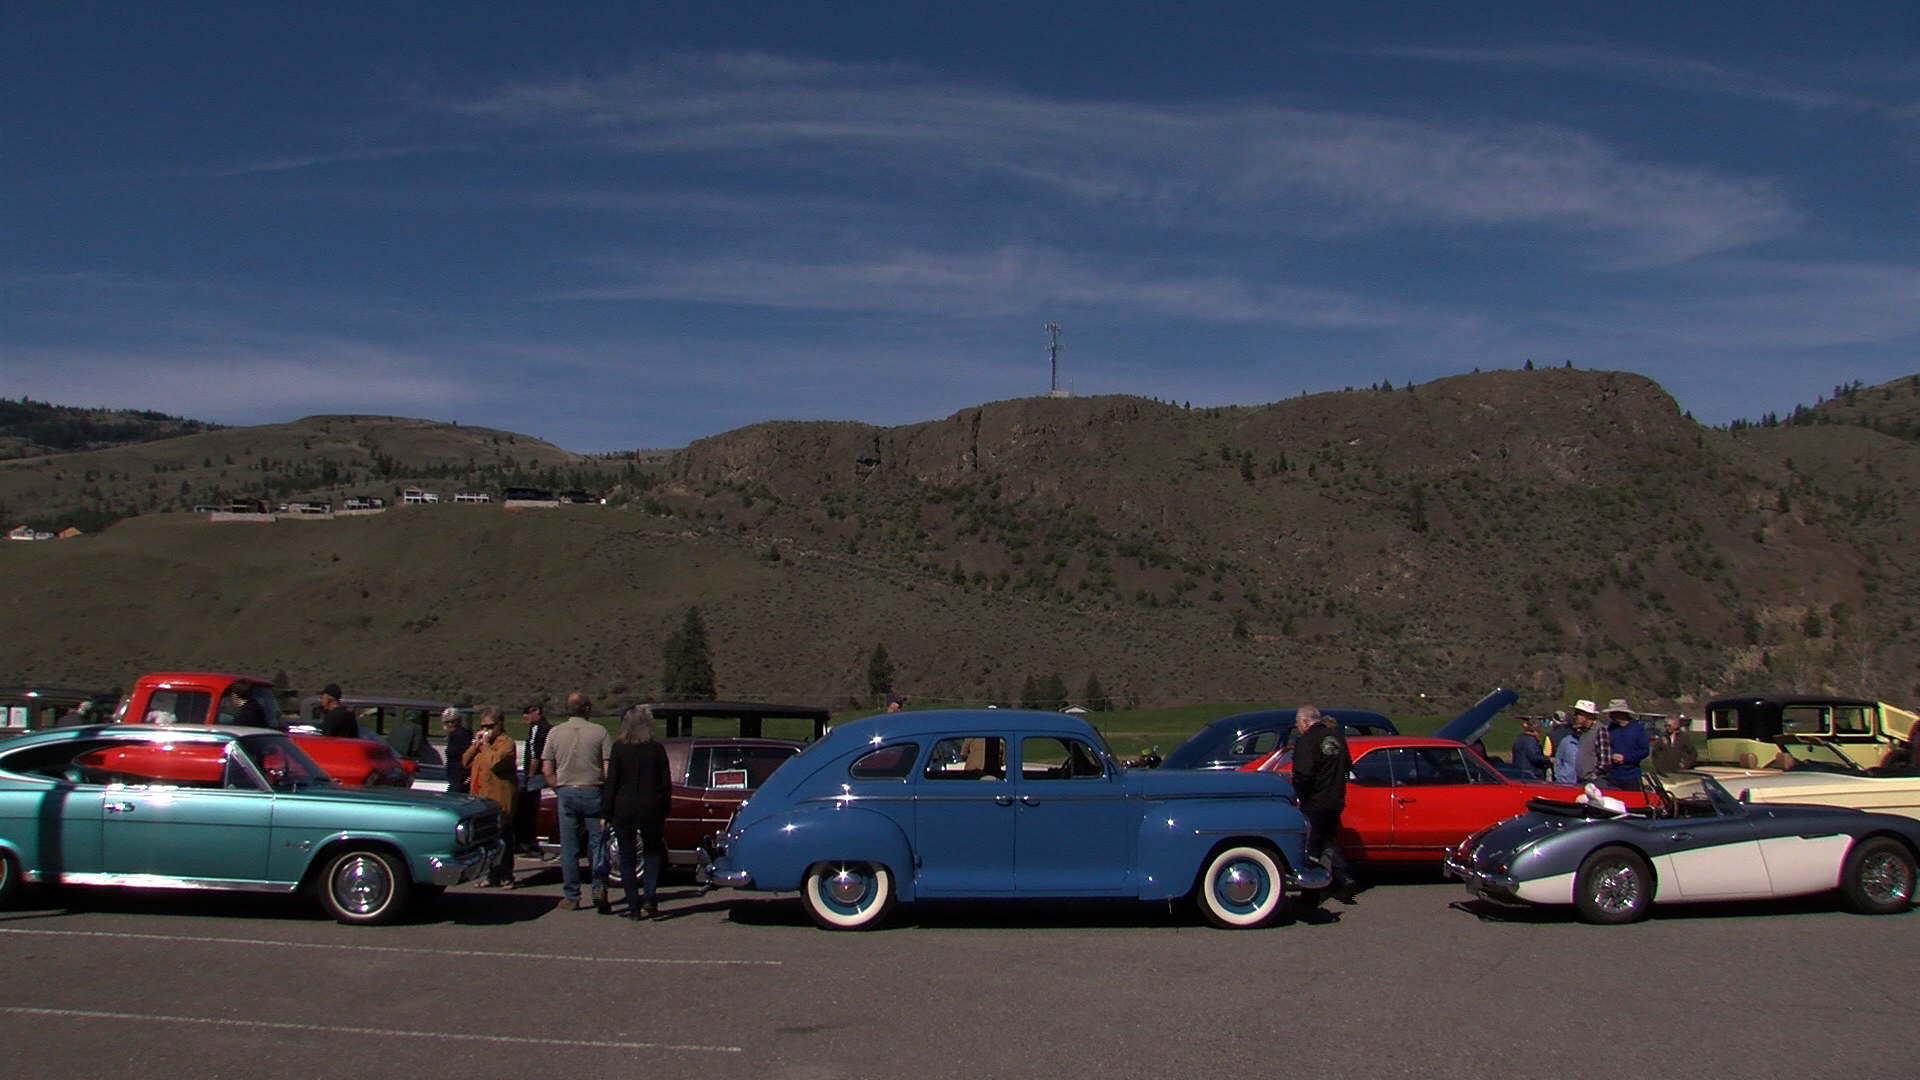 Sunny Skies Warm Up 49th Annual Kamloops Easter Classic Car Parade